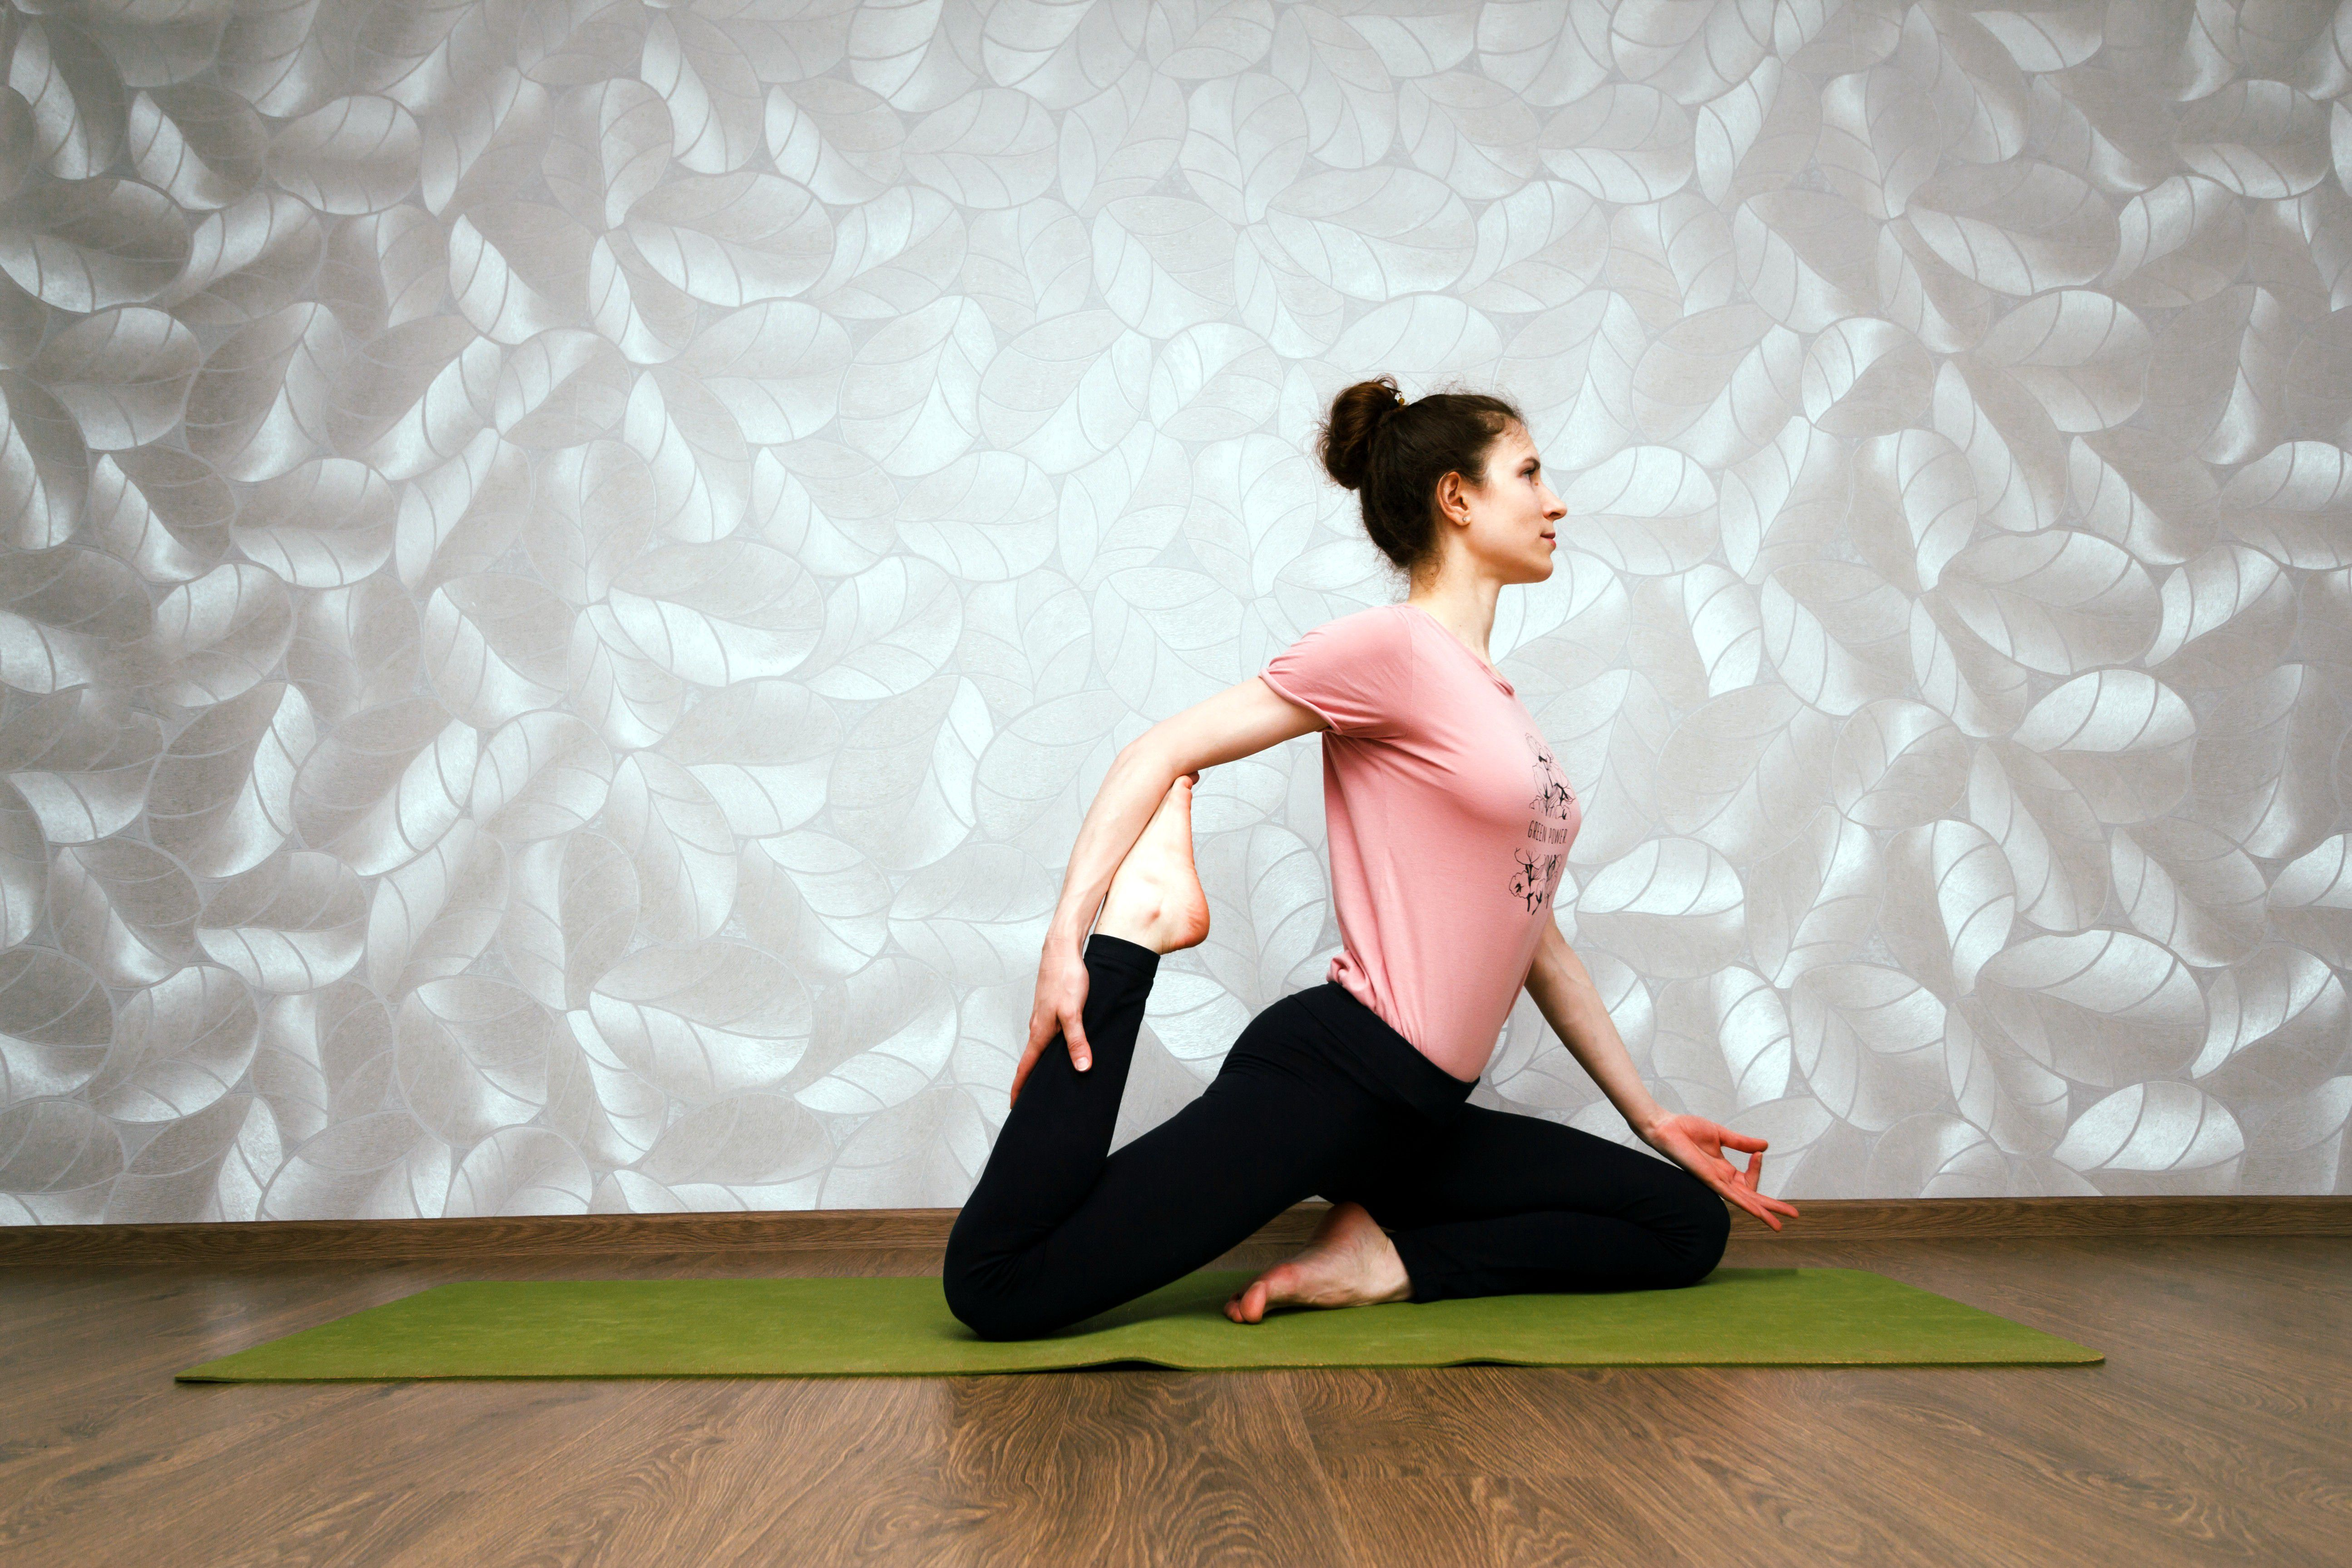 A woman stretches out her quadriceps muscle on a yoga mat